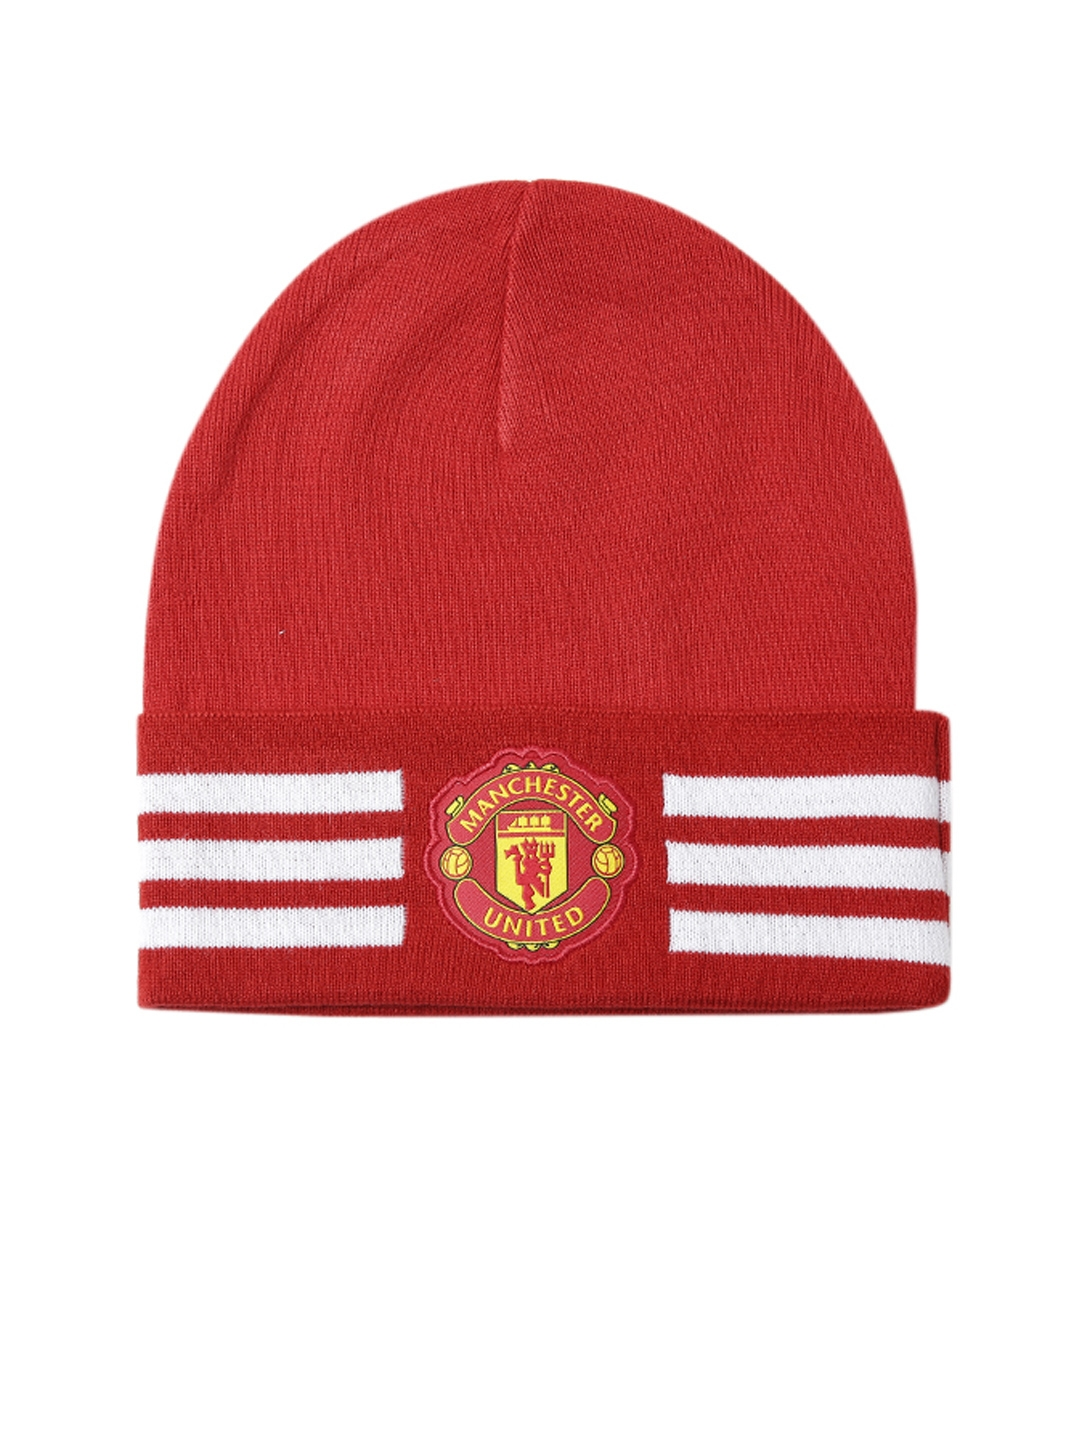 Buy Adidas Unisex Red Manchester United F.C. 3S Woolie Striped Beanie -  Caps for Unisex 1668691  cab87cc5012